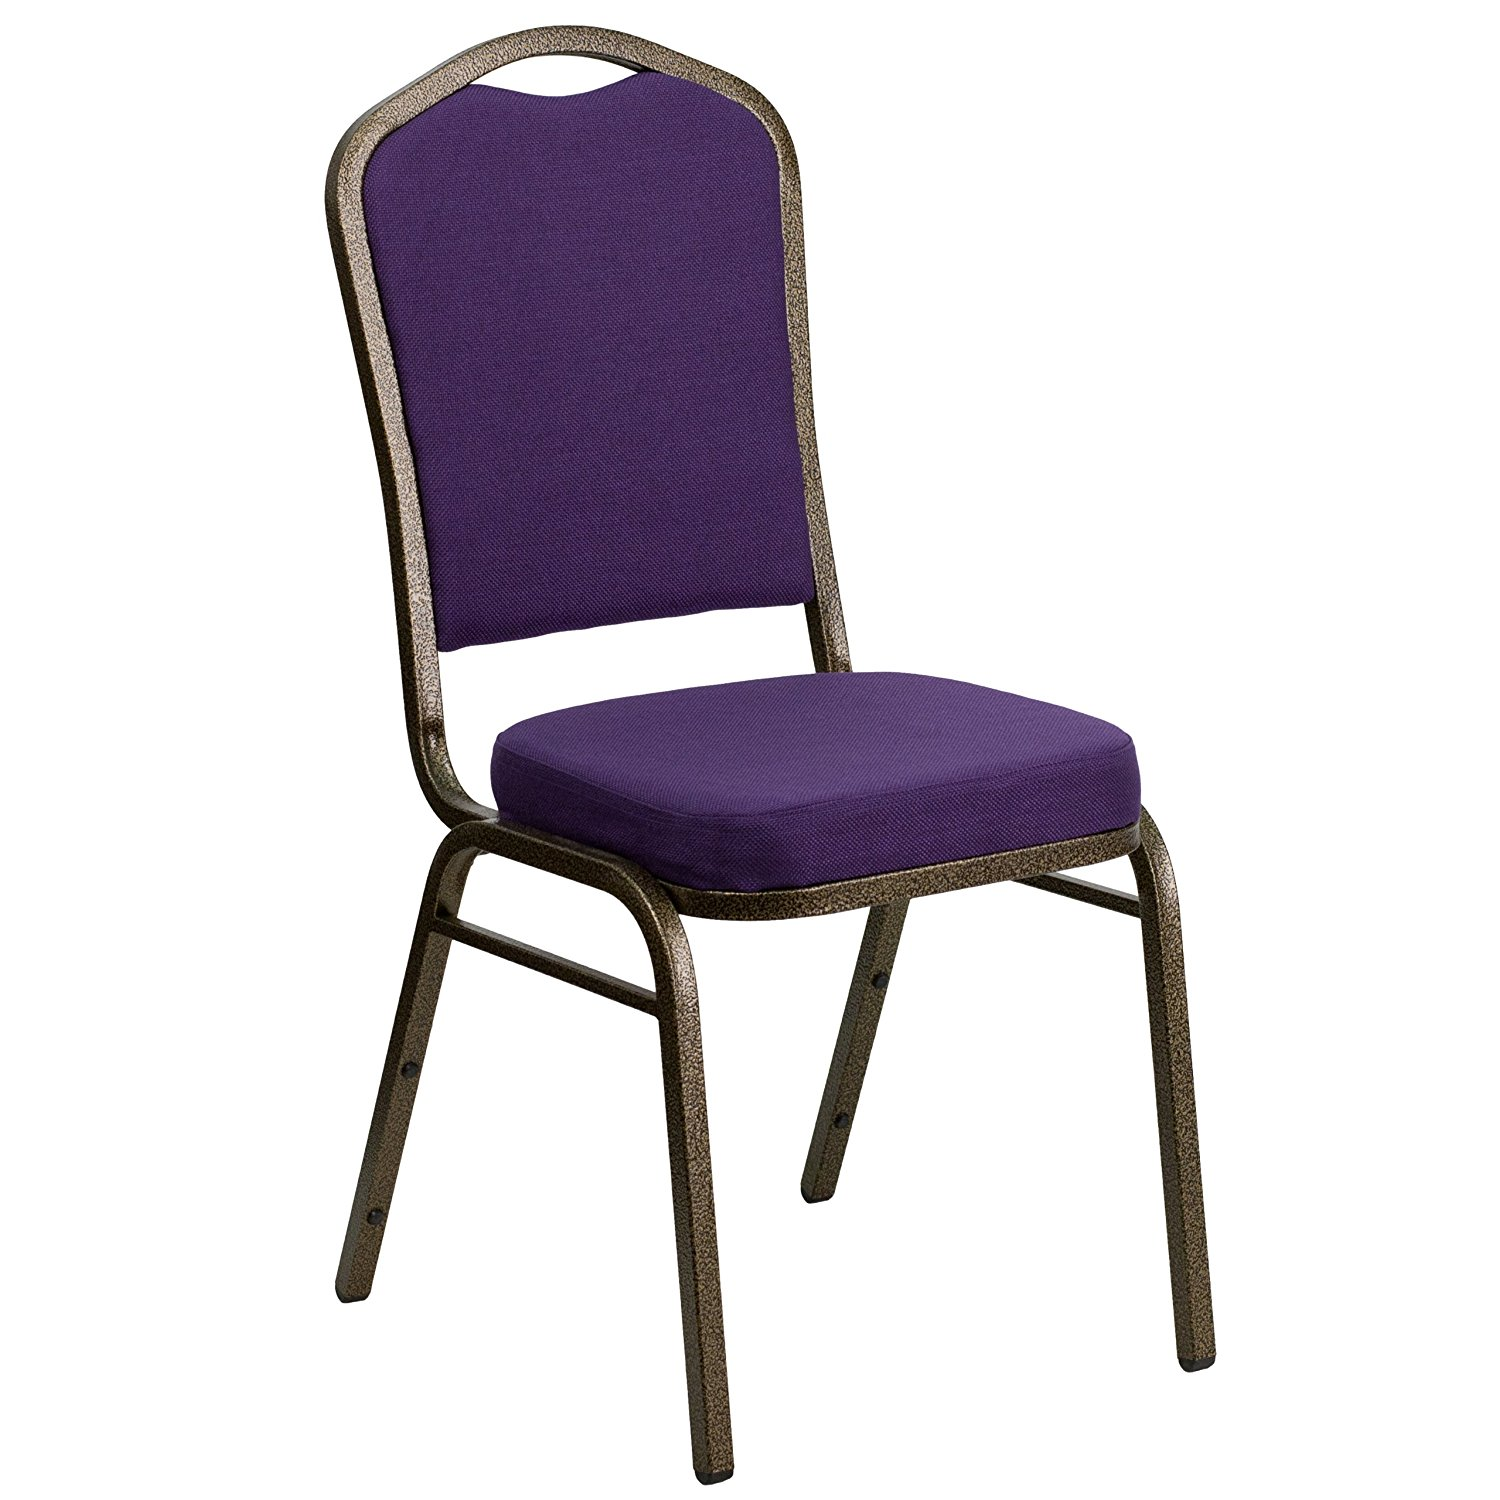 stackable chairs top rated MDWAMOH